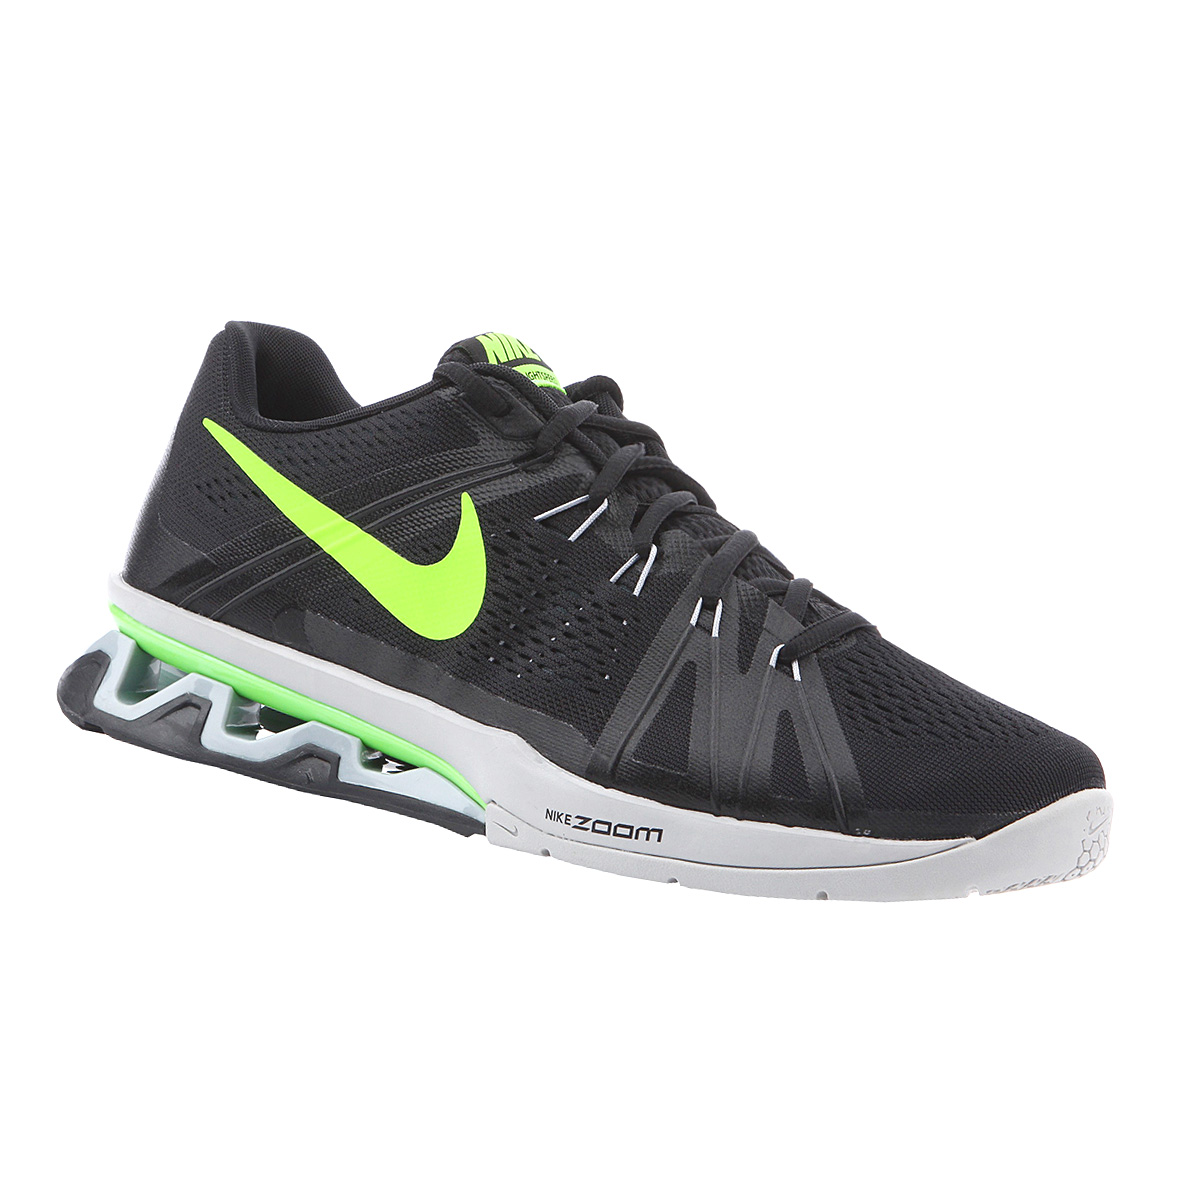 1d1a91c23d0d Nike Reax Lightspeed Black Shoes Men s Sneakers Running Shoes 8 Zoom ...